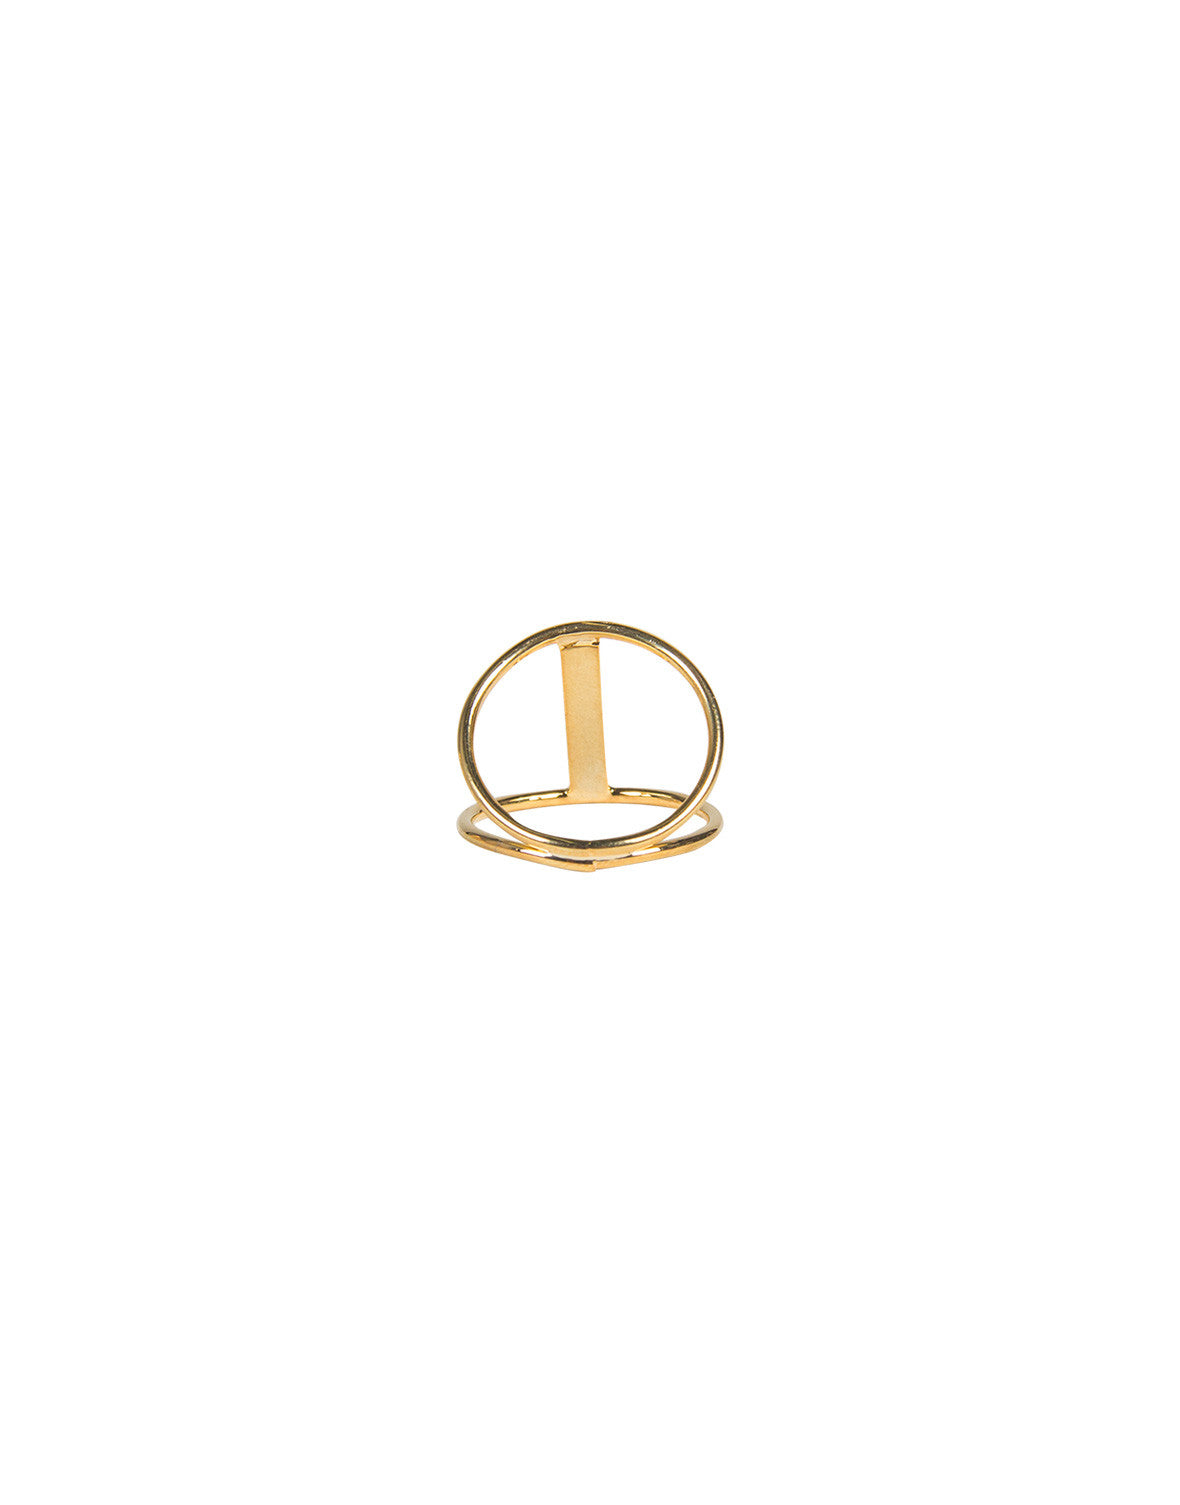 Cut Out Bar Knuckle Ring - Gold - Ana GR 7567-Gold